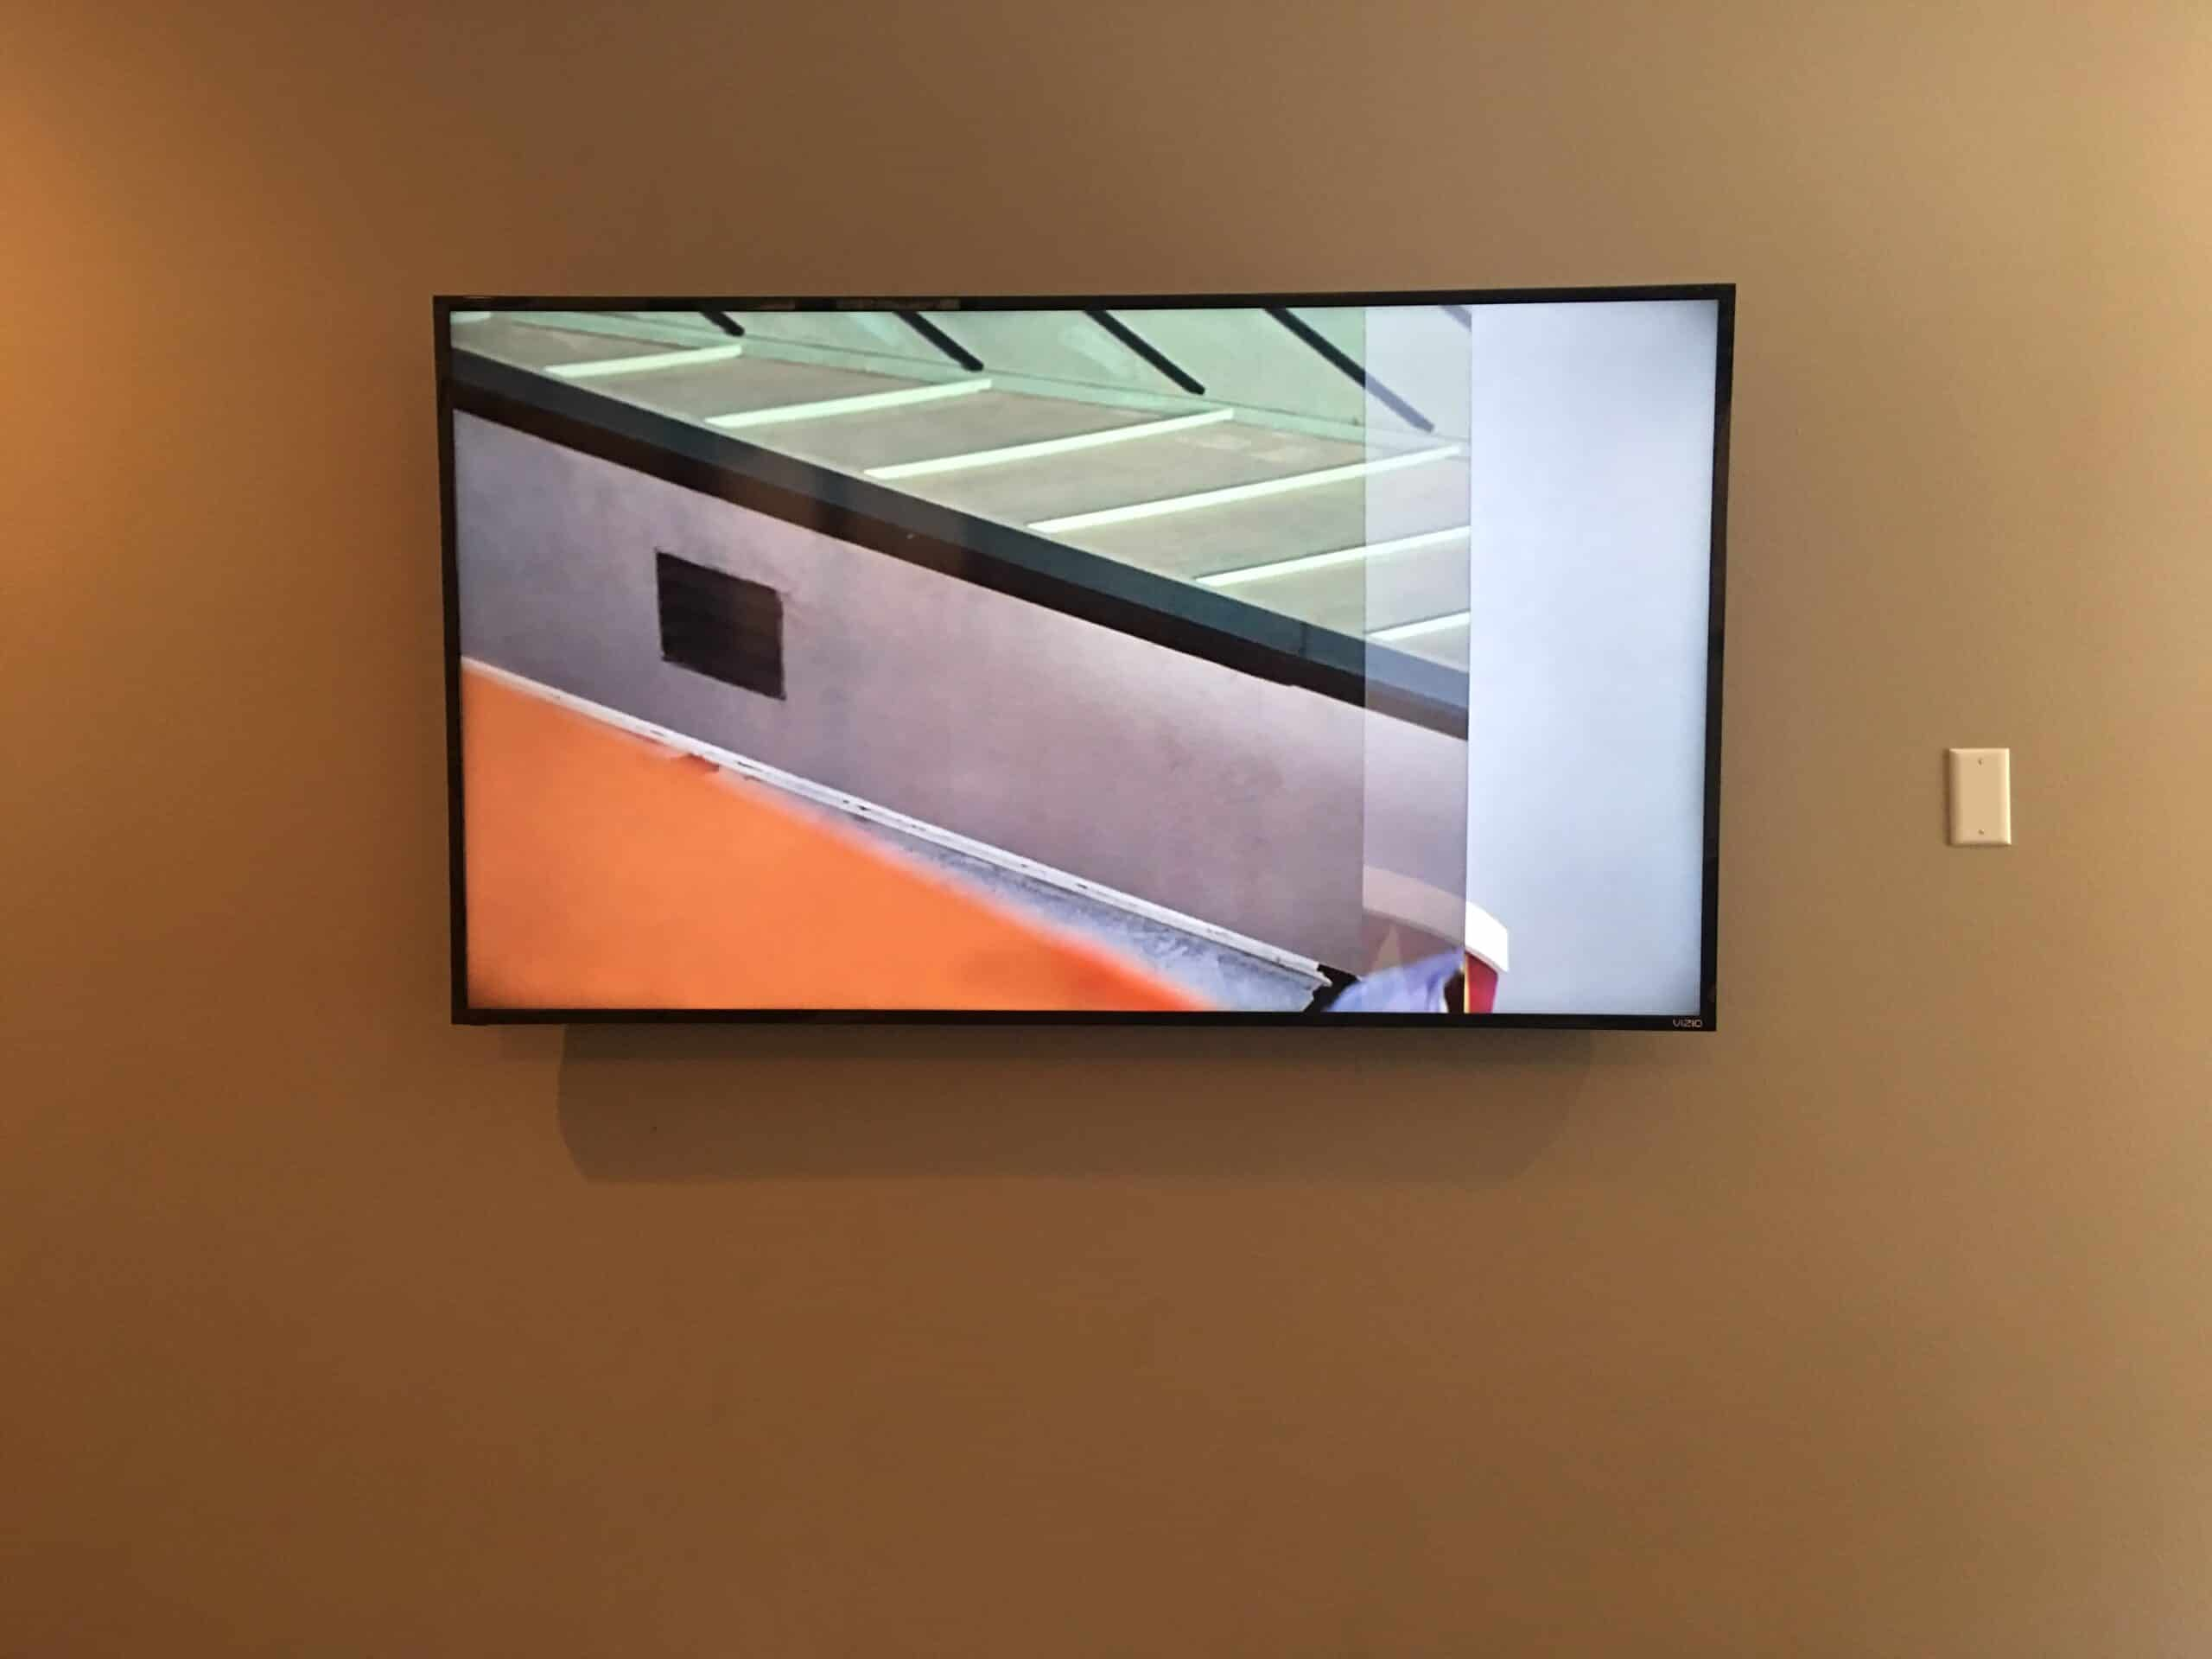 TV Mounting - Post